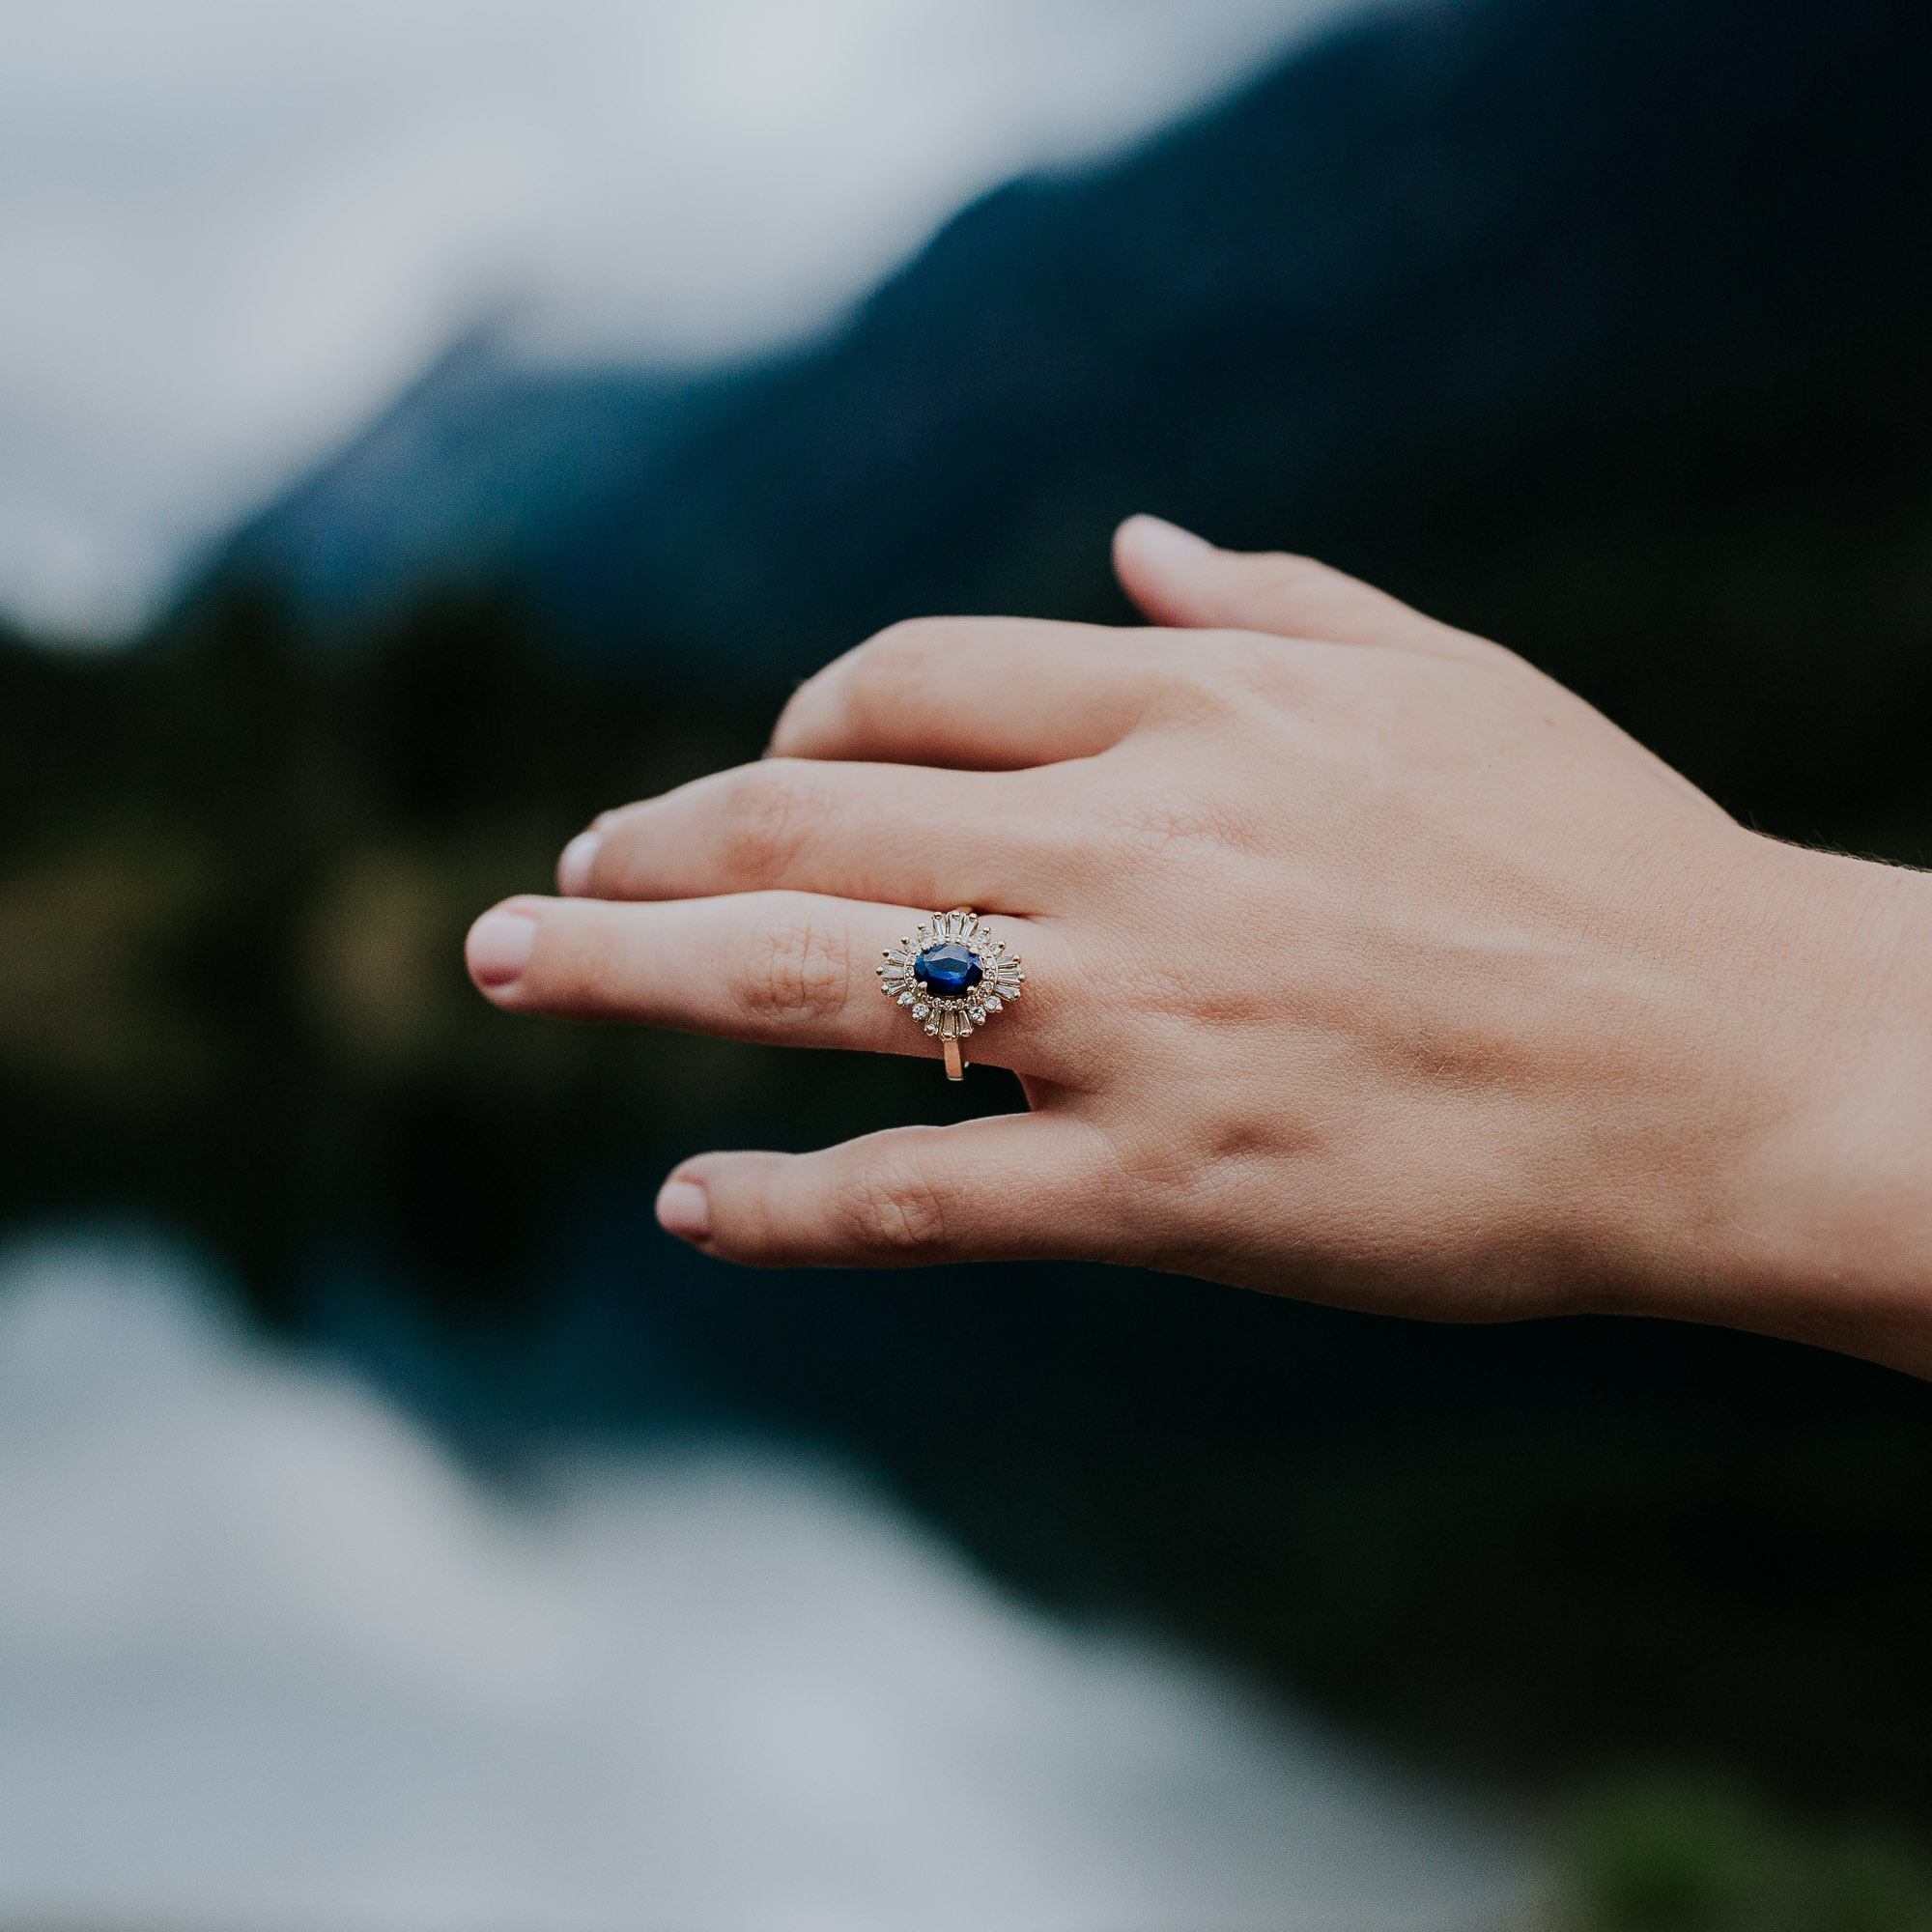 moody pnw engagement snoqualmie pass seattle engagement photographer portland engagement portland wedding pnw elopement